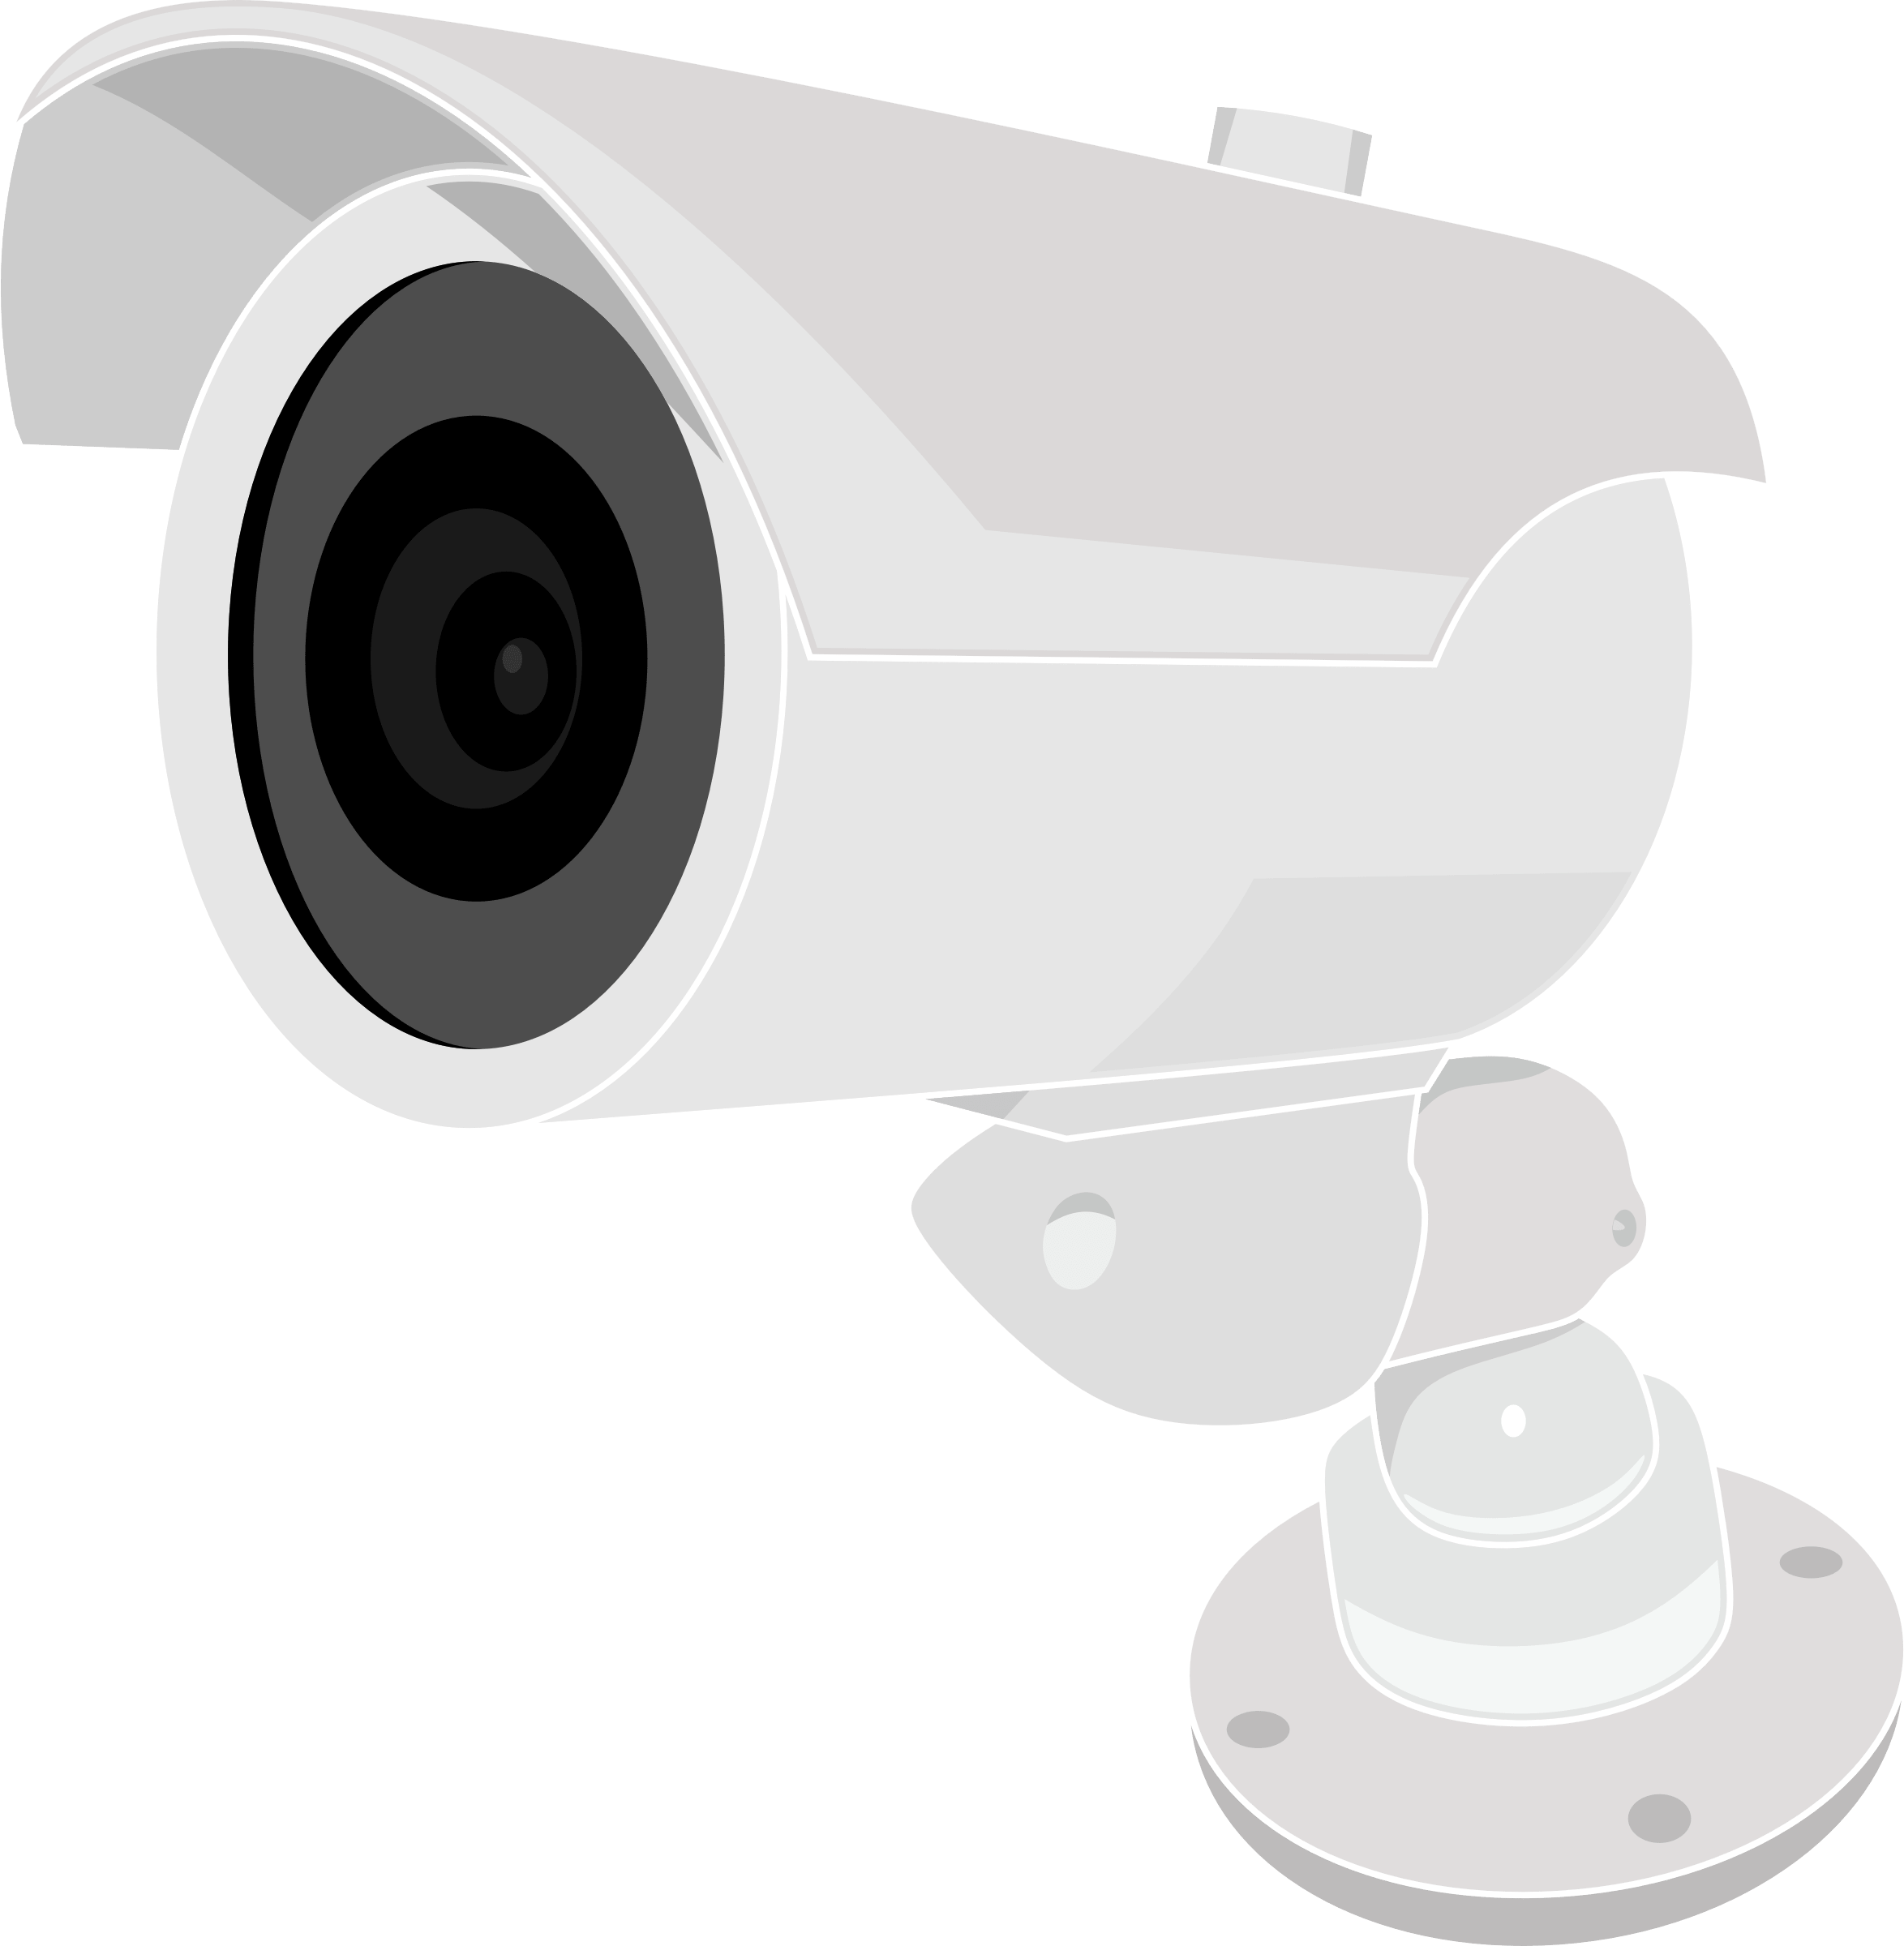 security-clipart-security-video-camera-15-min